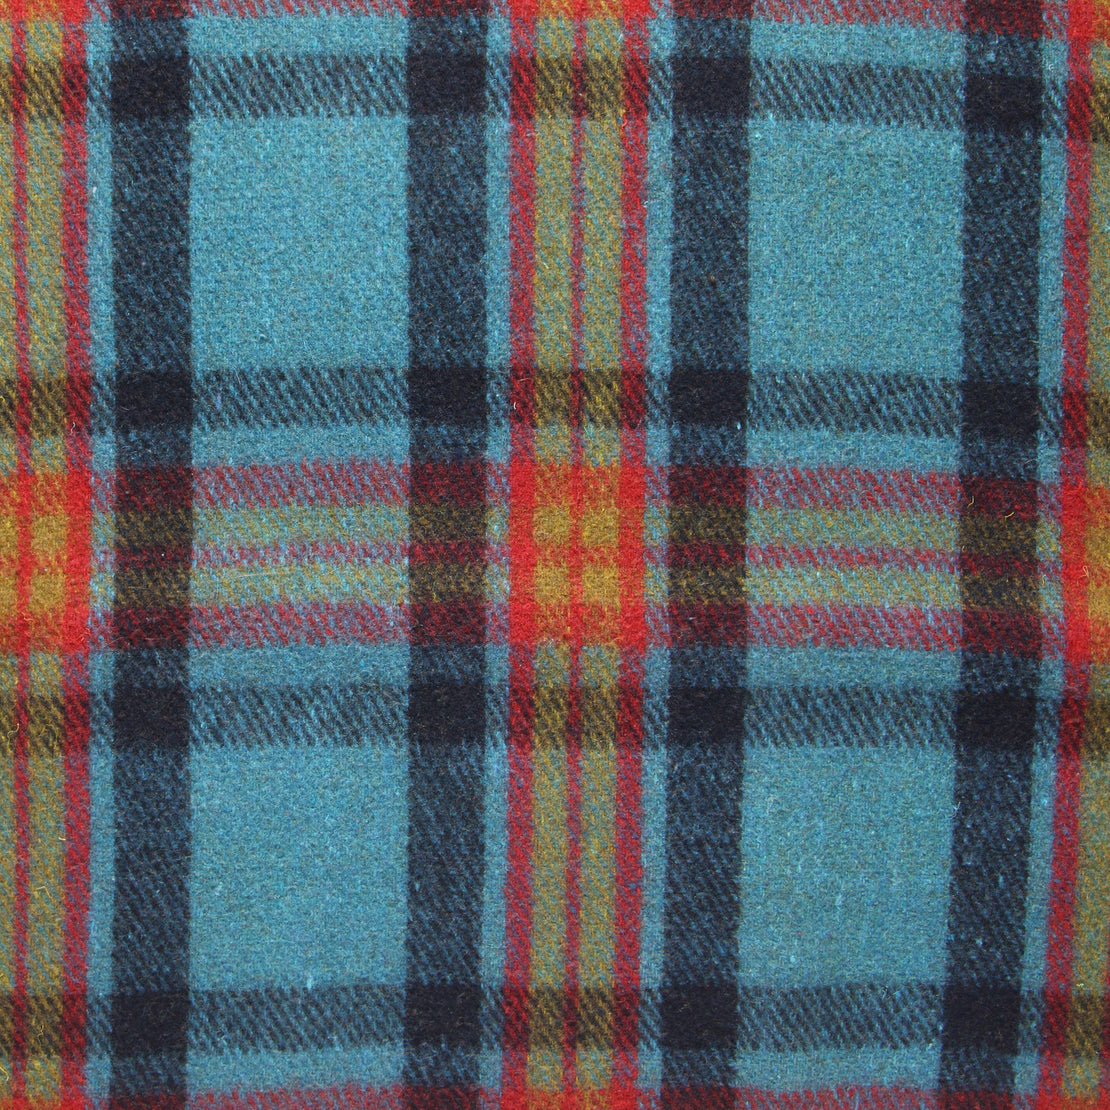 Vintage Indian Wool Plaid Blanket - Olive/Red/Teal